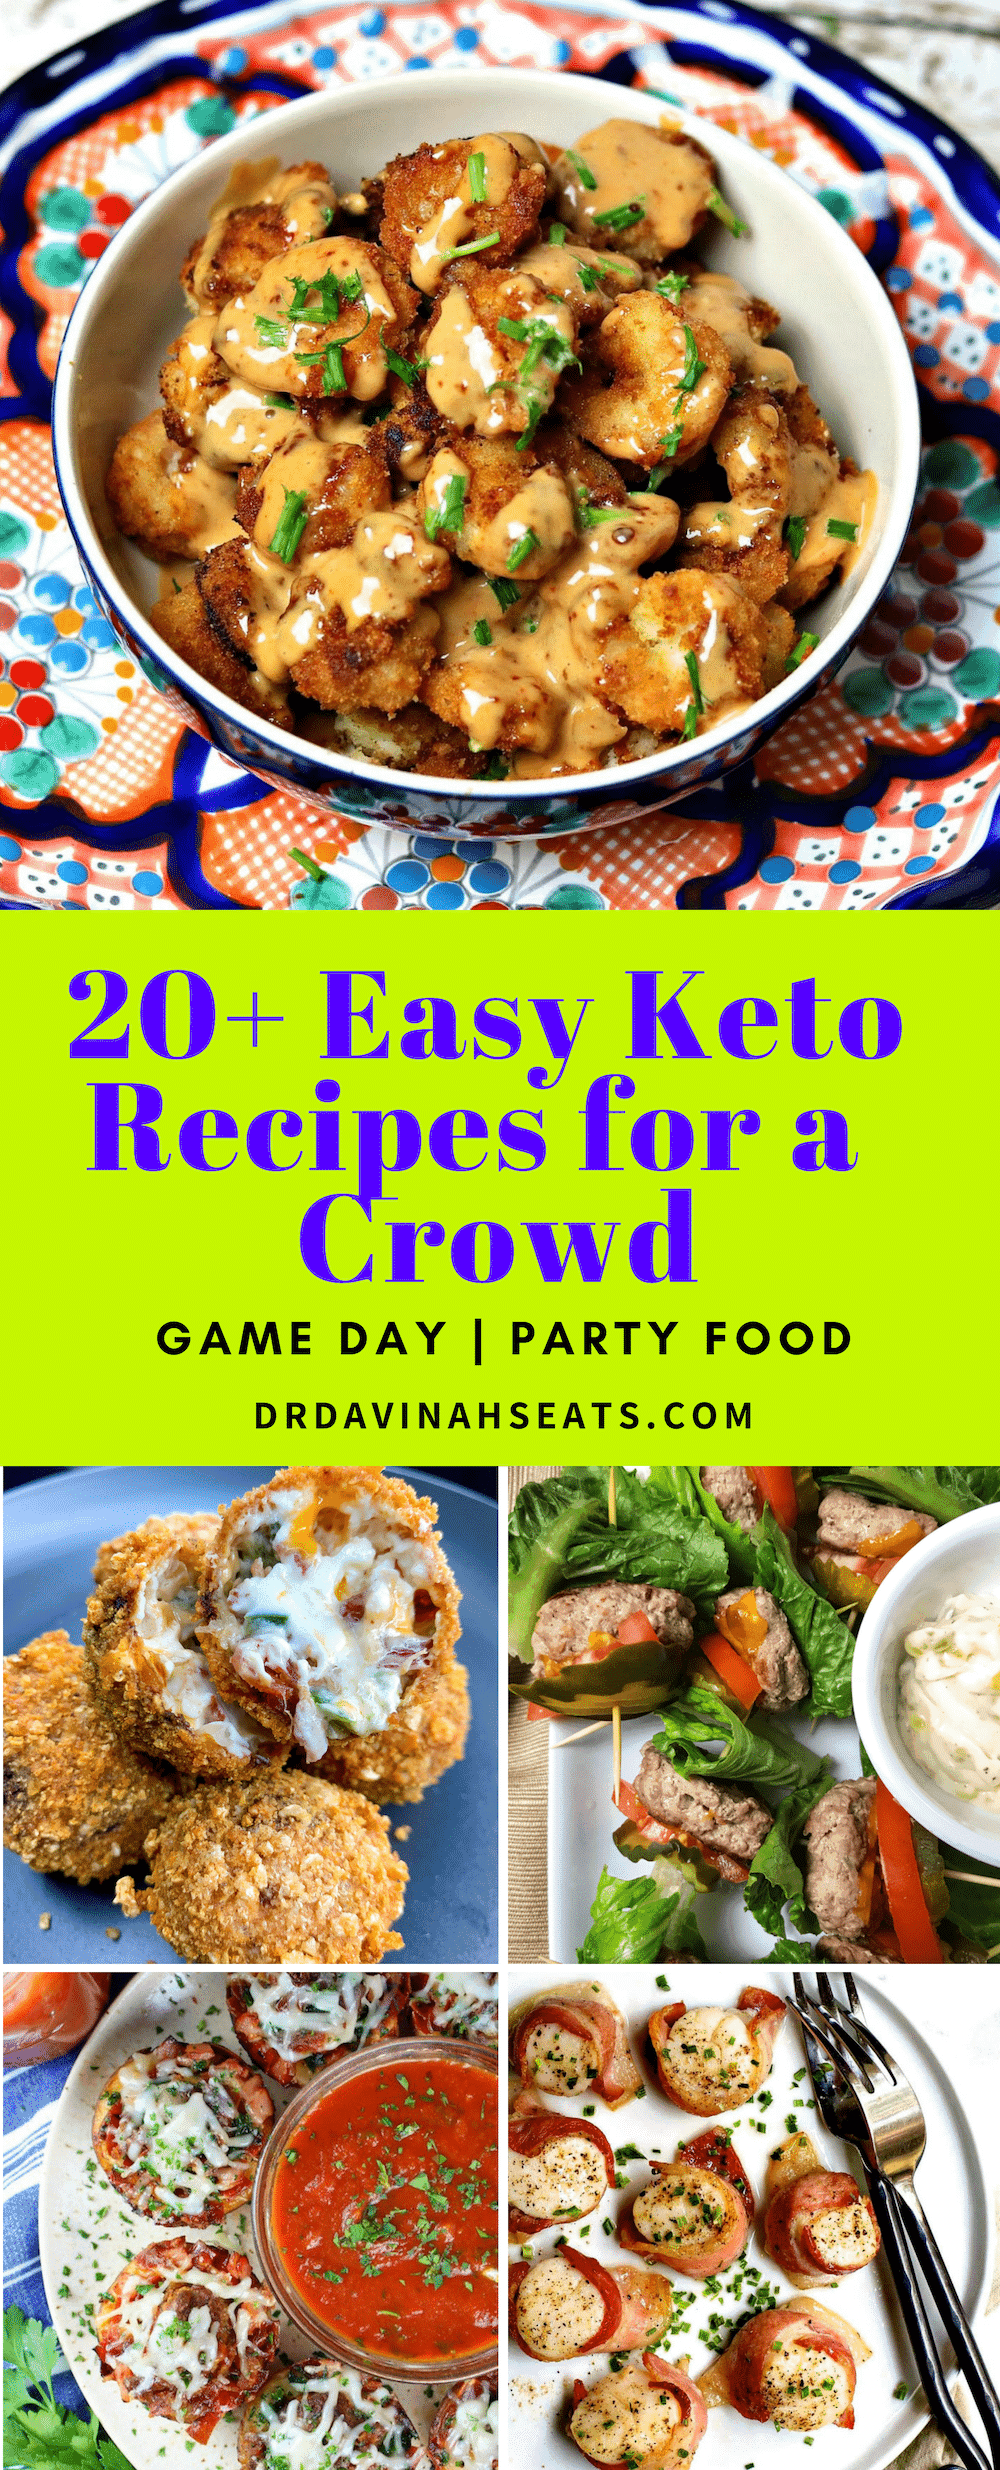 Looking for keto Super Bowl food ideas? Need easy keto appetizers for a crowd? I gather up more than 20 of the best easy keto recipes for a crowd. #keto #ketoappetizers #ketoparty #partyfood #ketorecipes #lowcarbrecipes #foodforacrowd